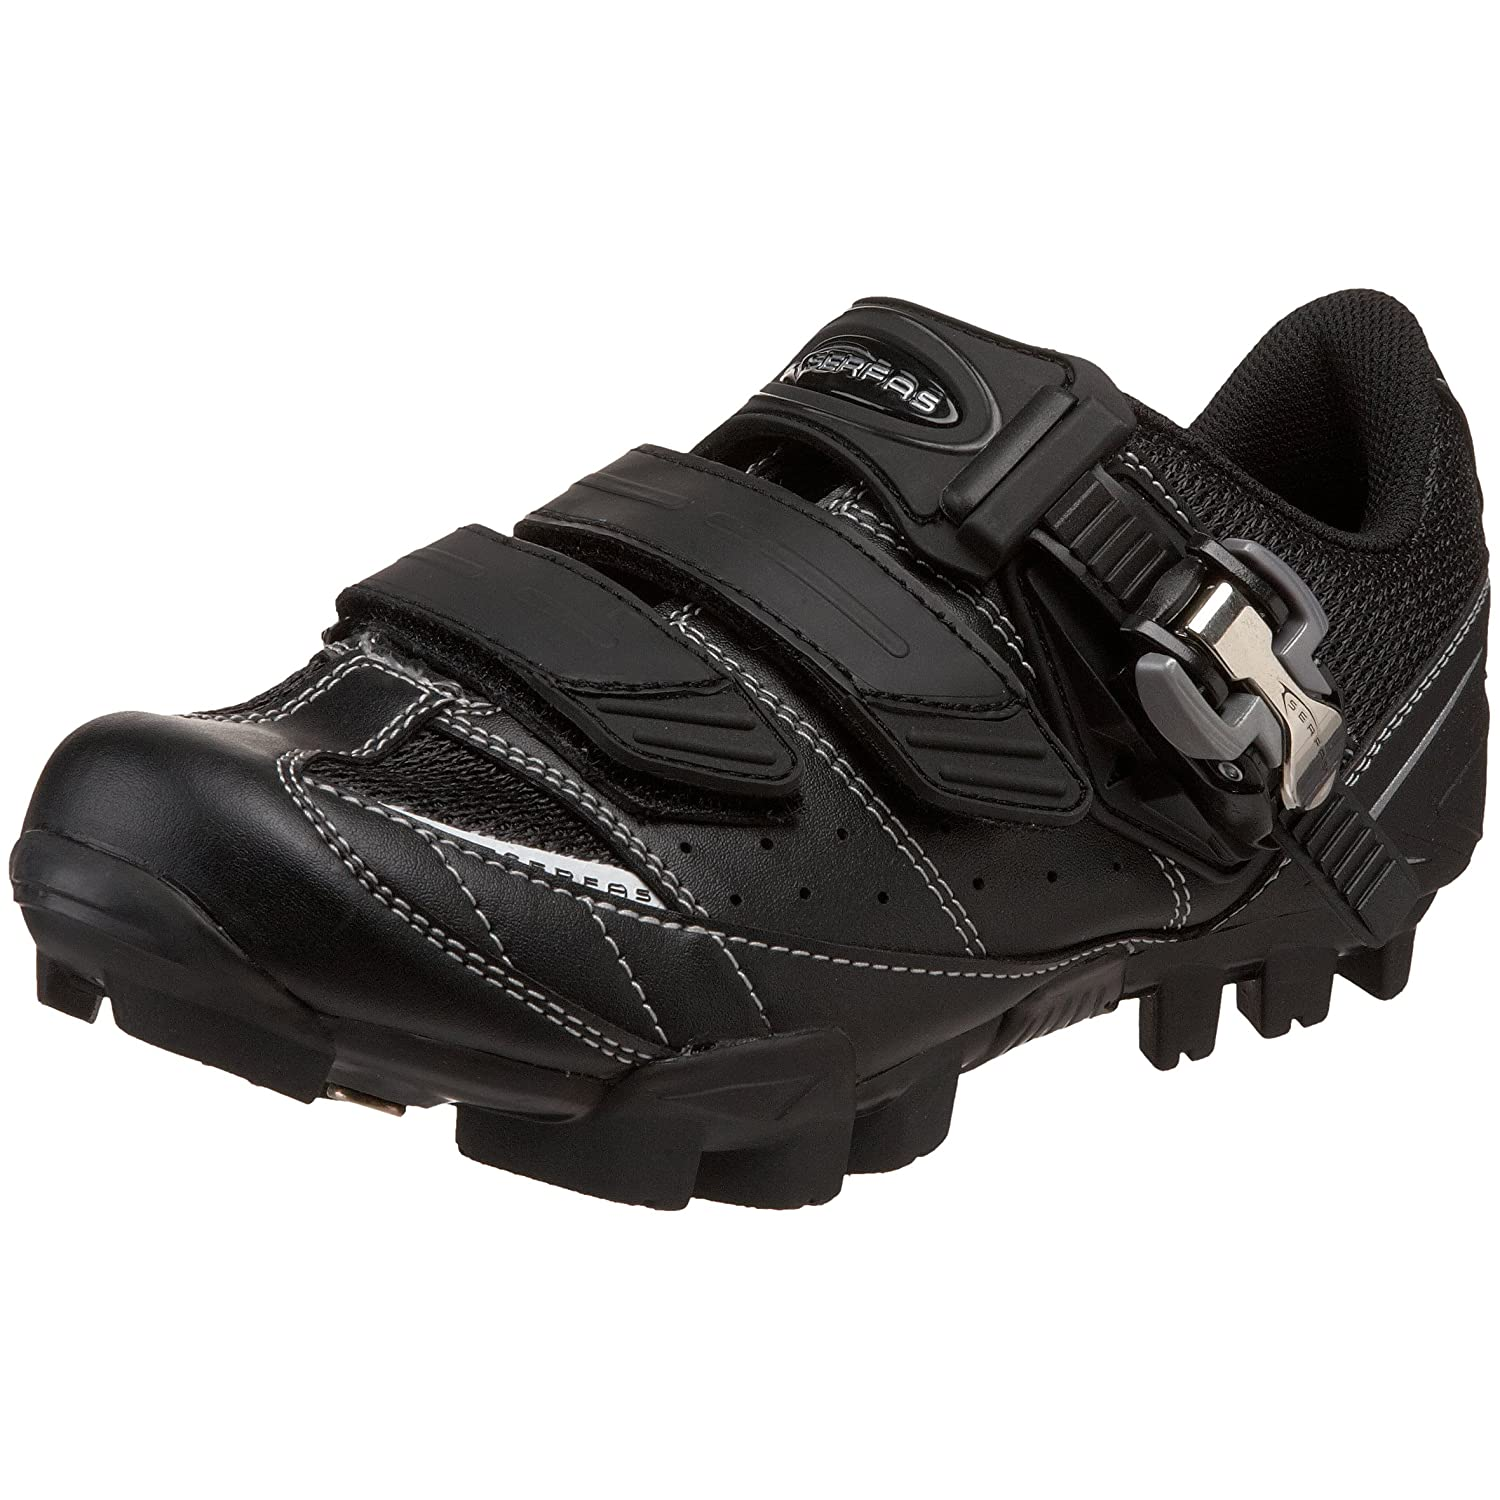 Serfas Women s Astro Mountain Bike Shoe